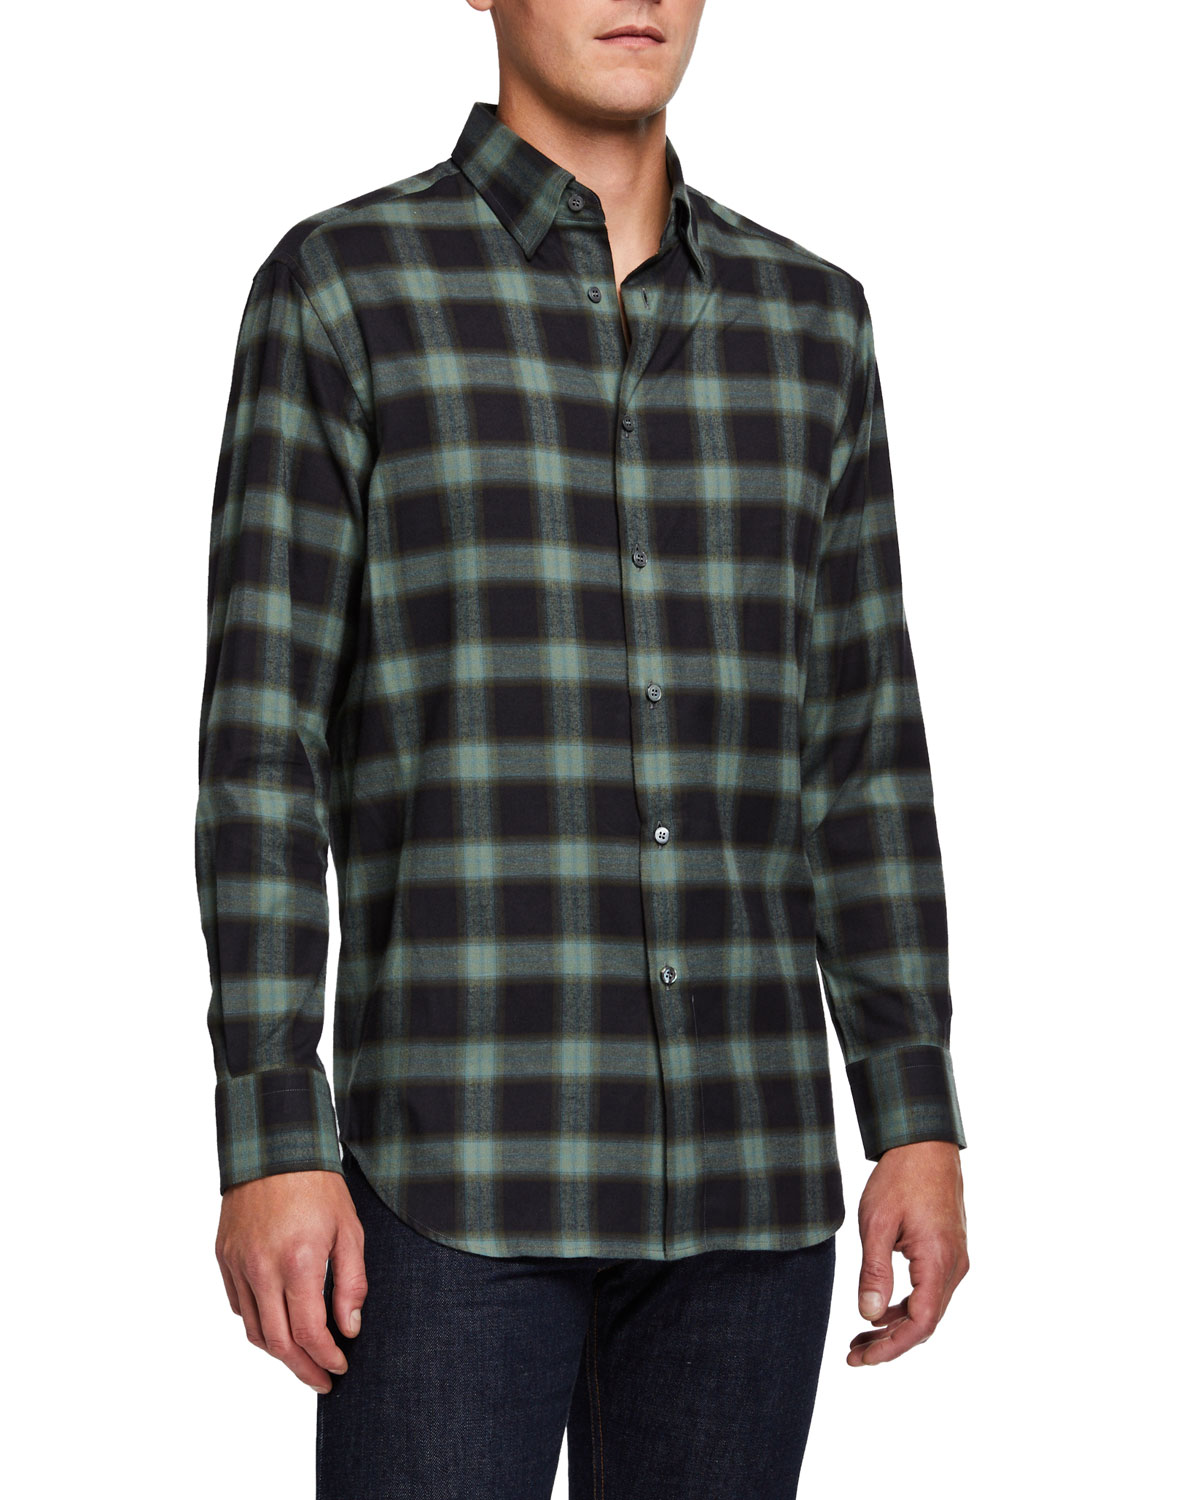 Brioni Men's Loden Plaid Sport Shirt